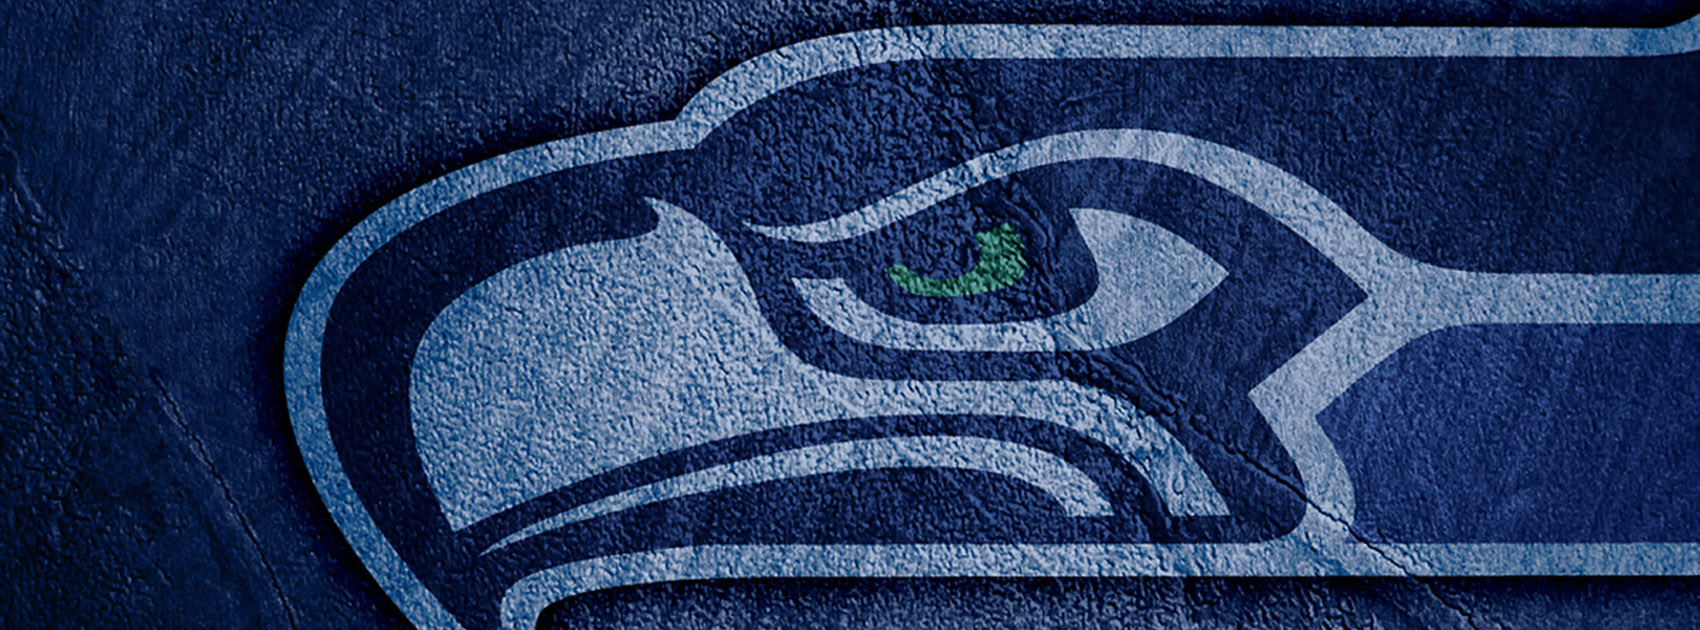 https://idigitalcitizen.files.wordpress.com/2012/03/seattle-seahawks-shadow-facebook-timeline-cover1.jpg